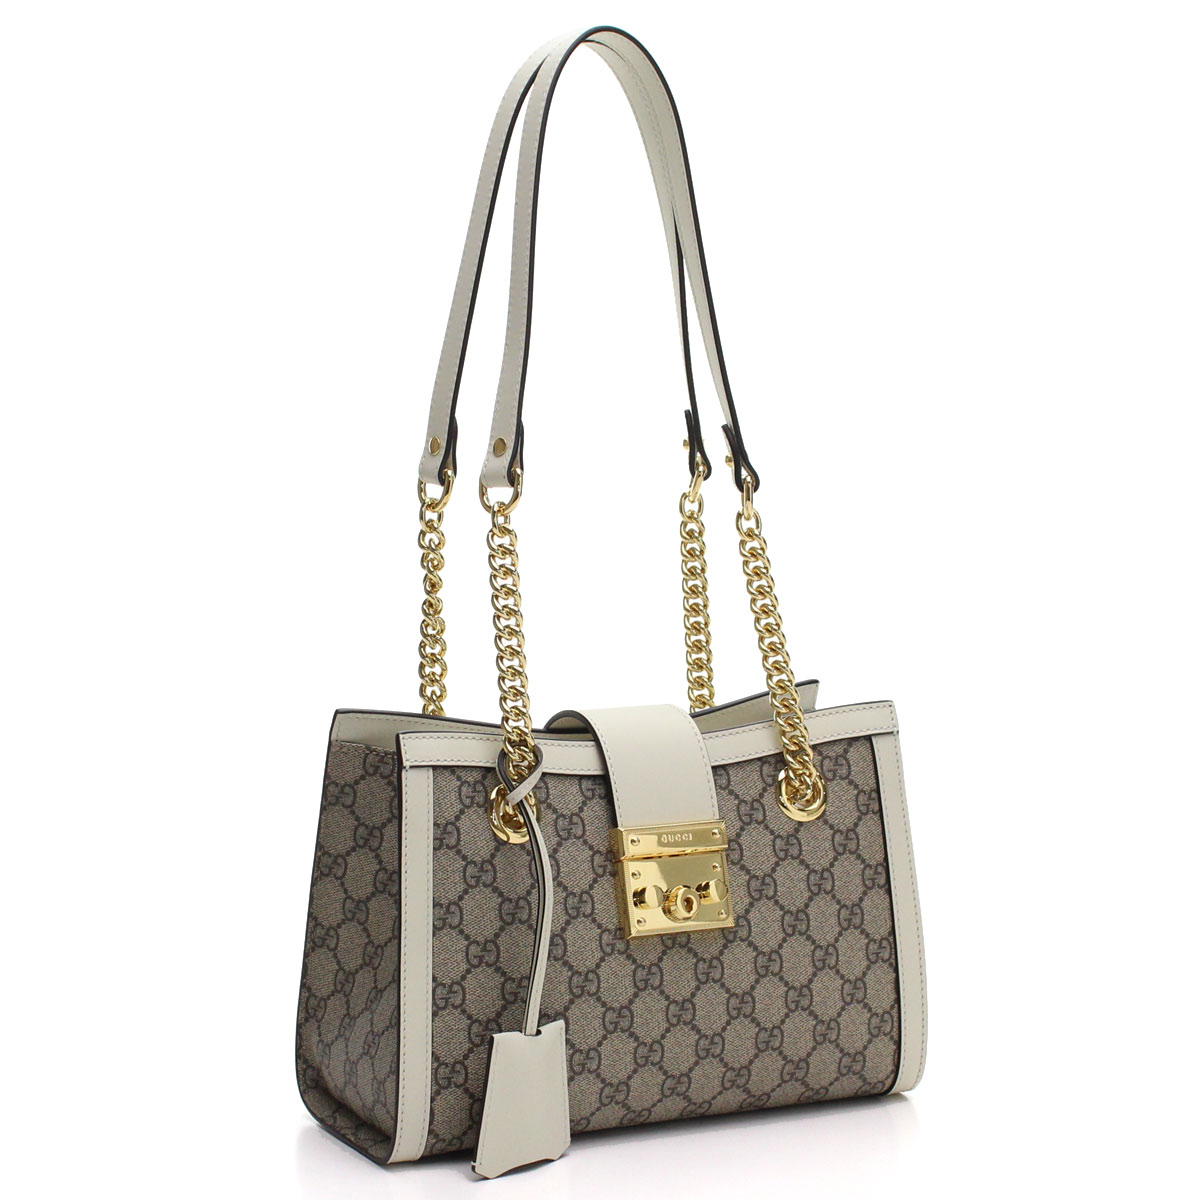 レディースバッグ, トートバッグ  GUCCI GG 498156 KHNKG 9761 tote BAG ladies ladies brand